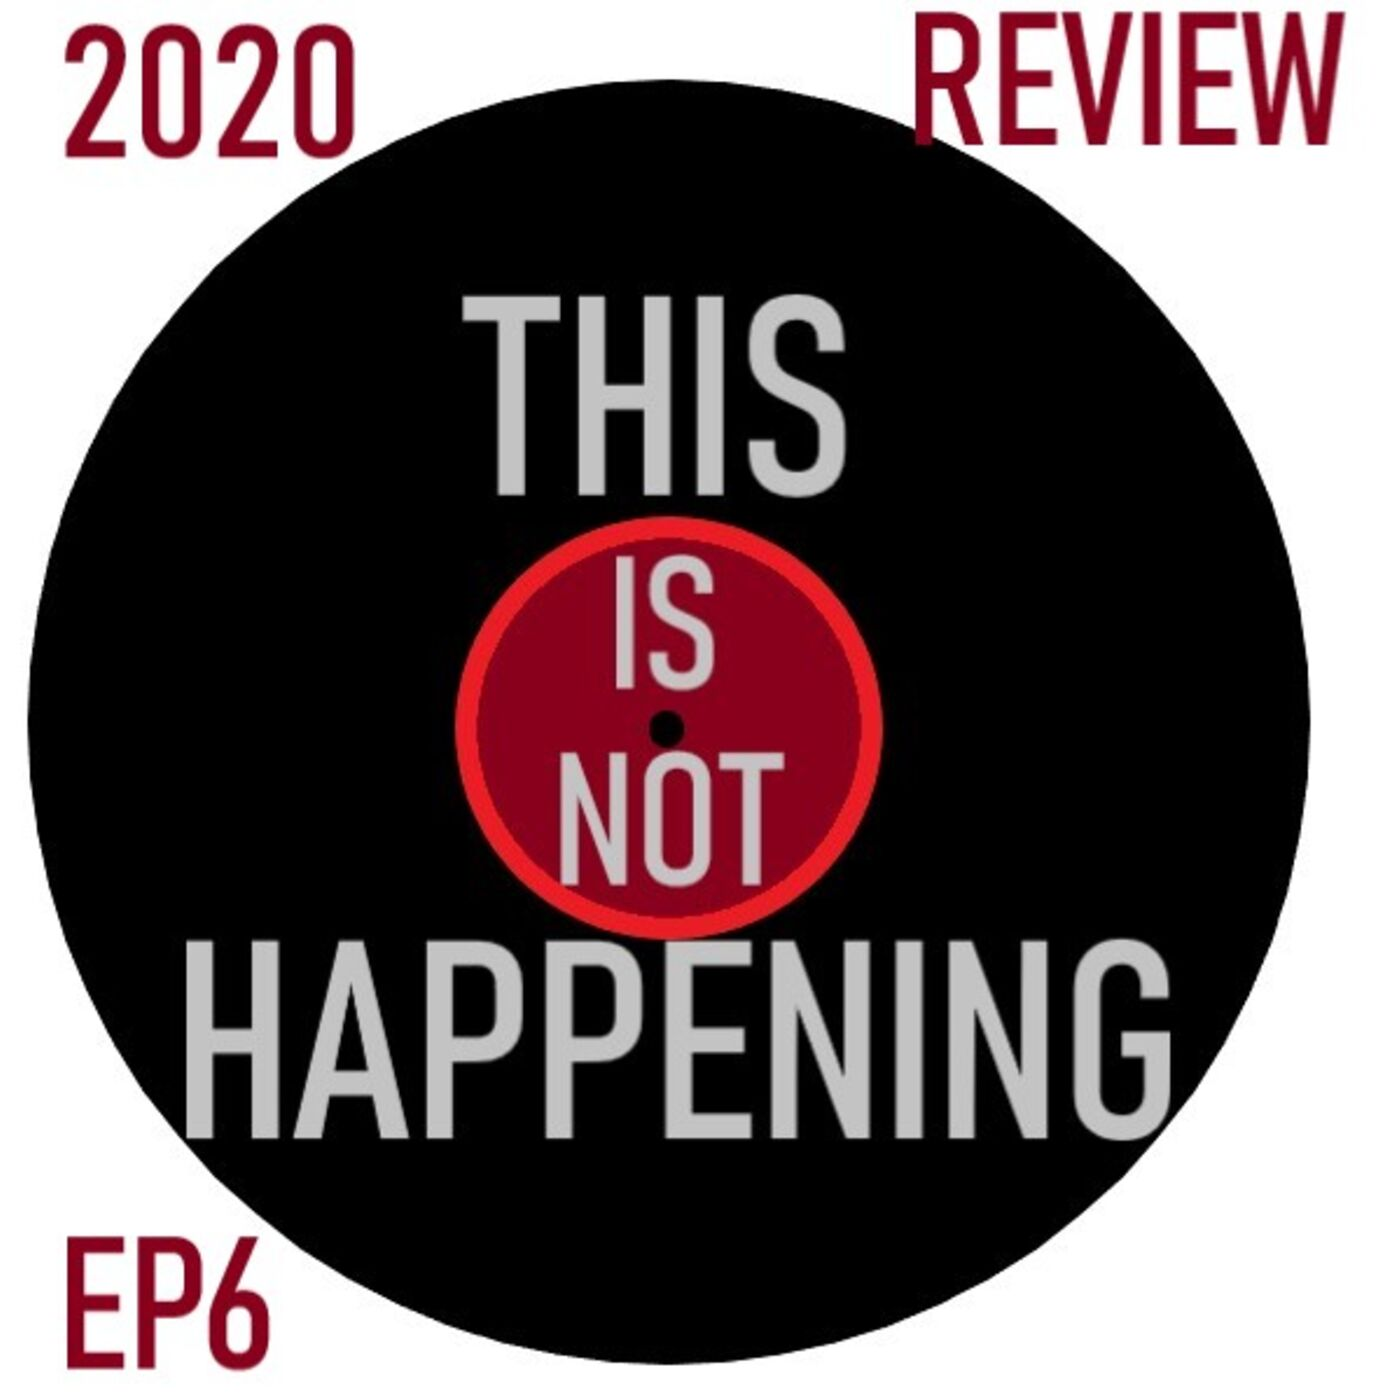 Ep 6 - Review of 2020